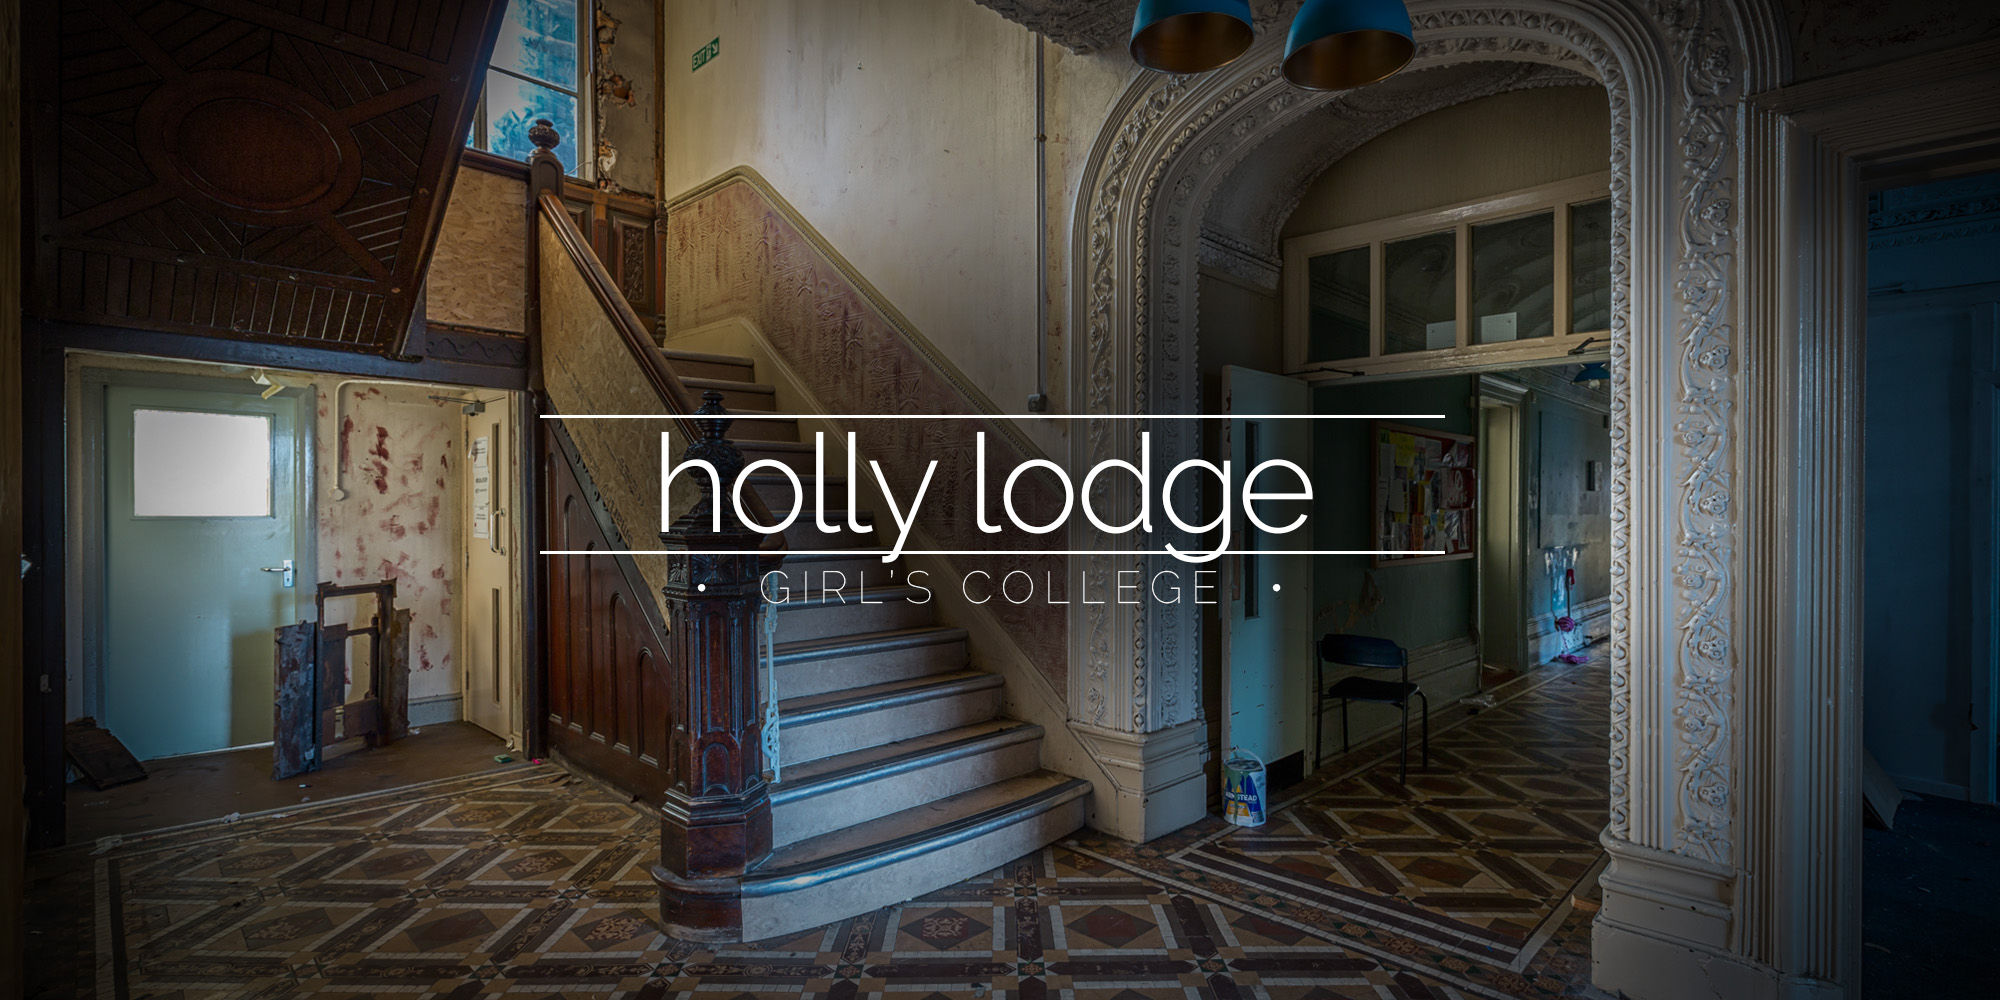 Holly Lodge Girls College, Liverpool